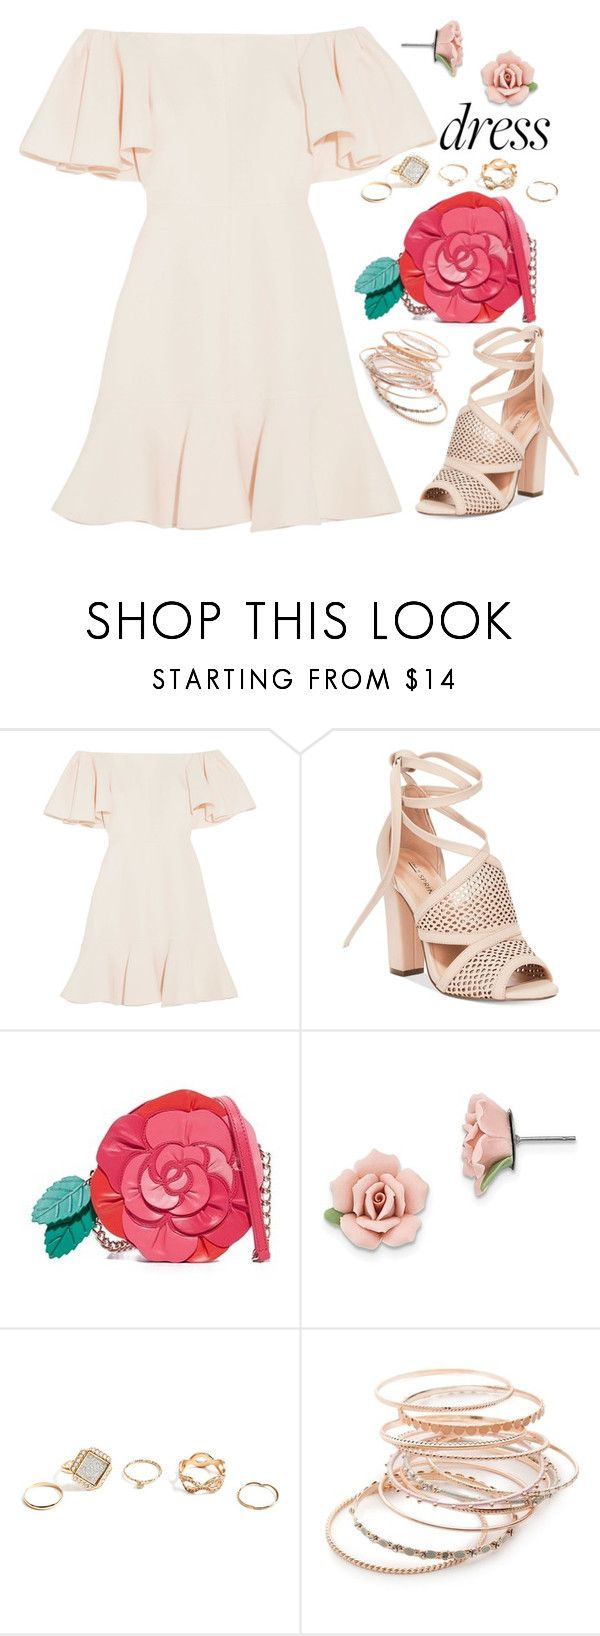 """Spring Trend: Off-Shoulder Dresses"" by joslynaurora ❤ liked on Polyvore featuring Valentino, Call it SPRING, Kate Spade, 1928, GUESS, Red Camel, Spring, dress, sandals and offshoulderdress"